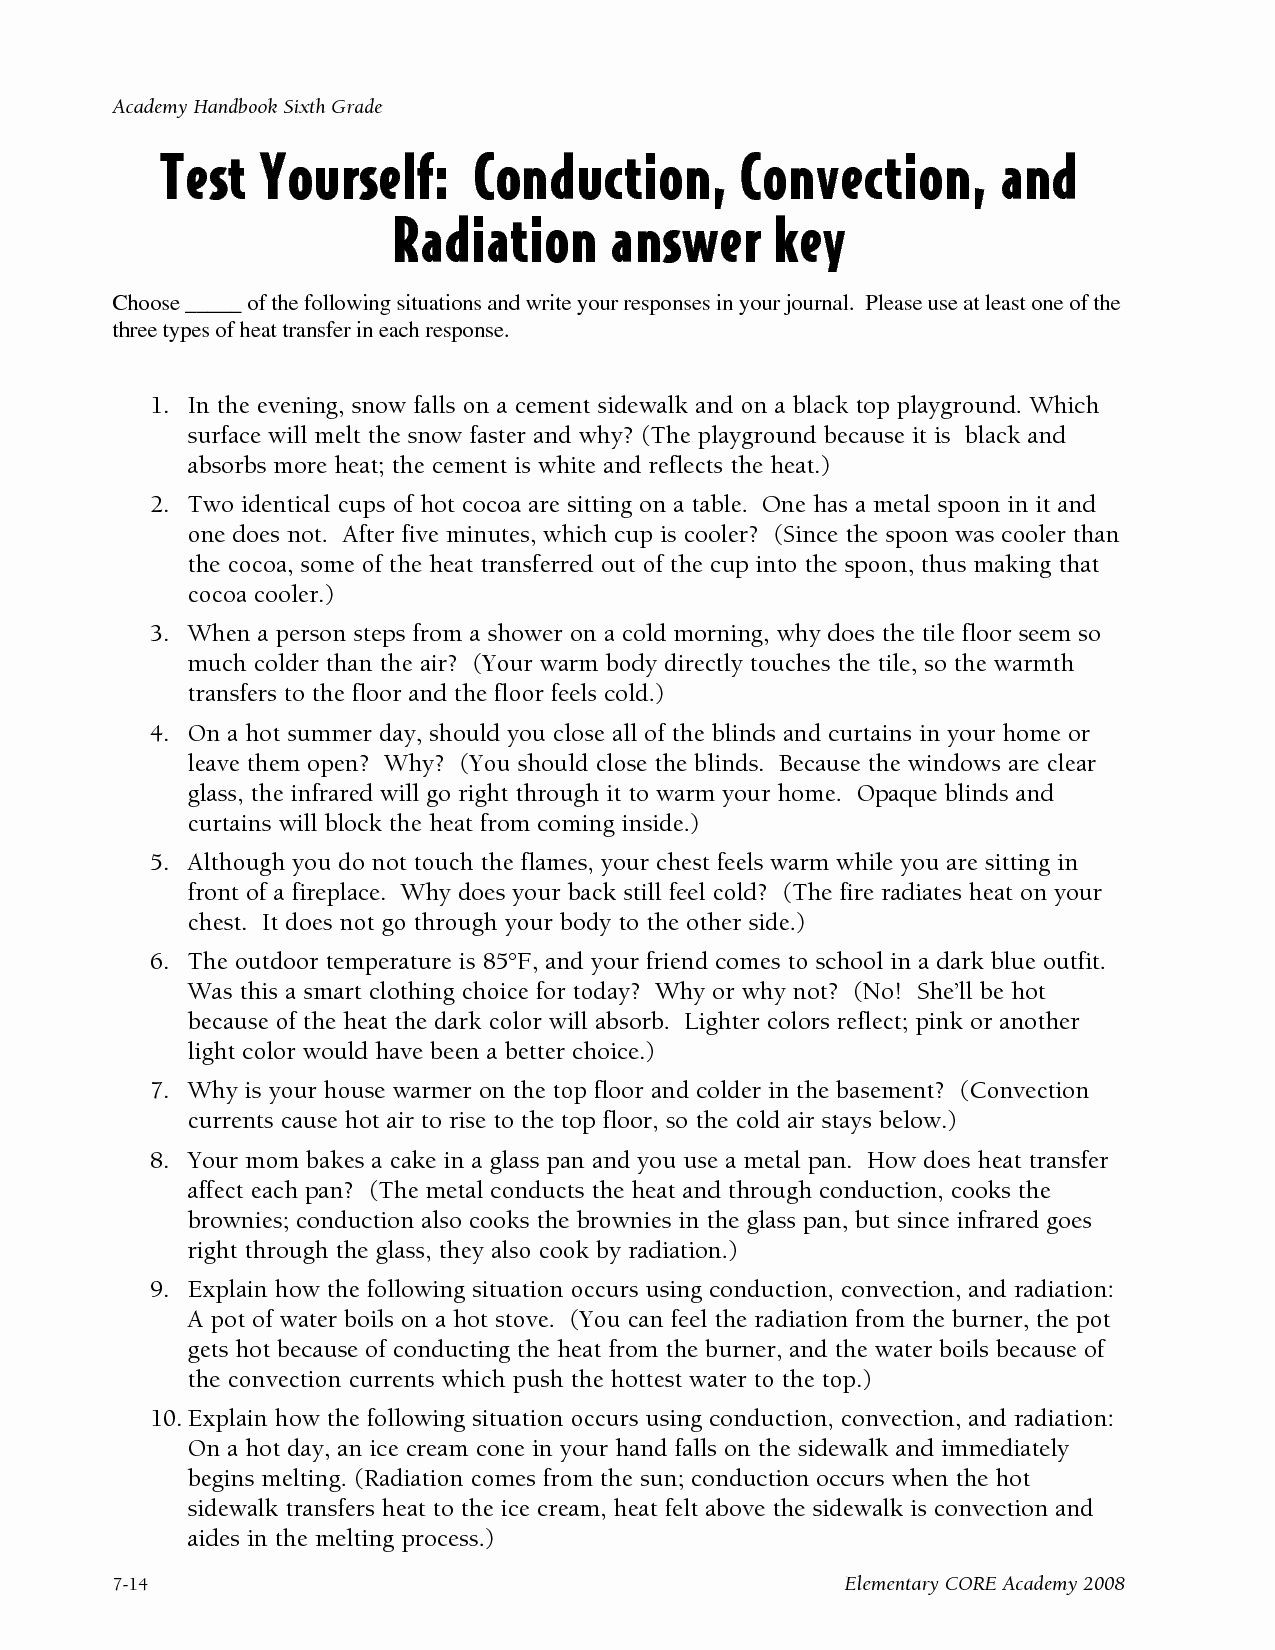 Heat Transfer Worksheet Middle School Heat Transfer Problems Worksheet